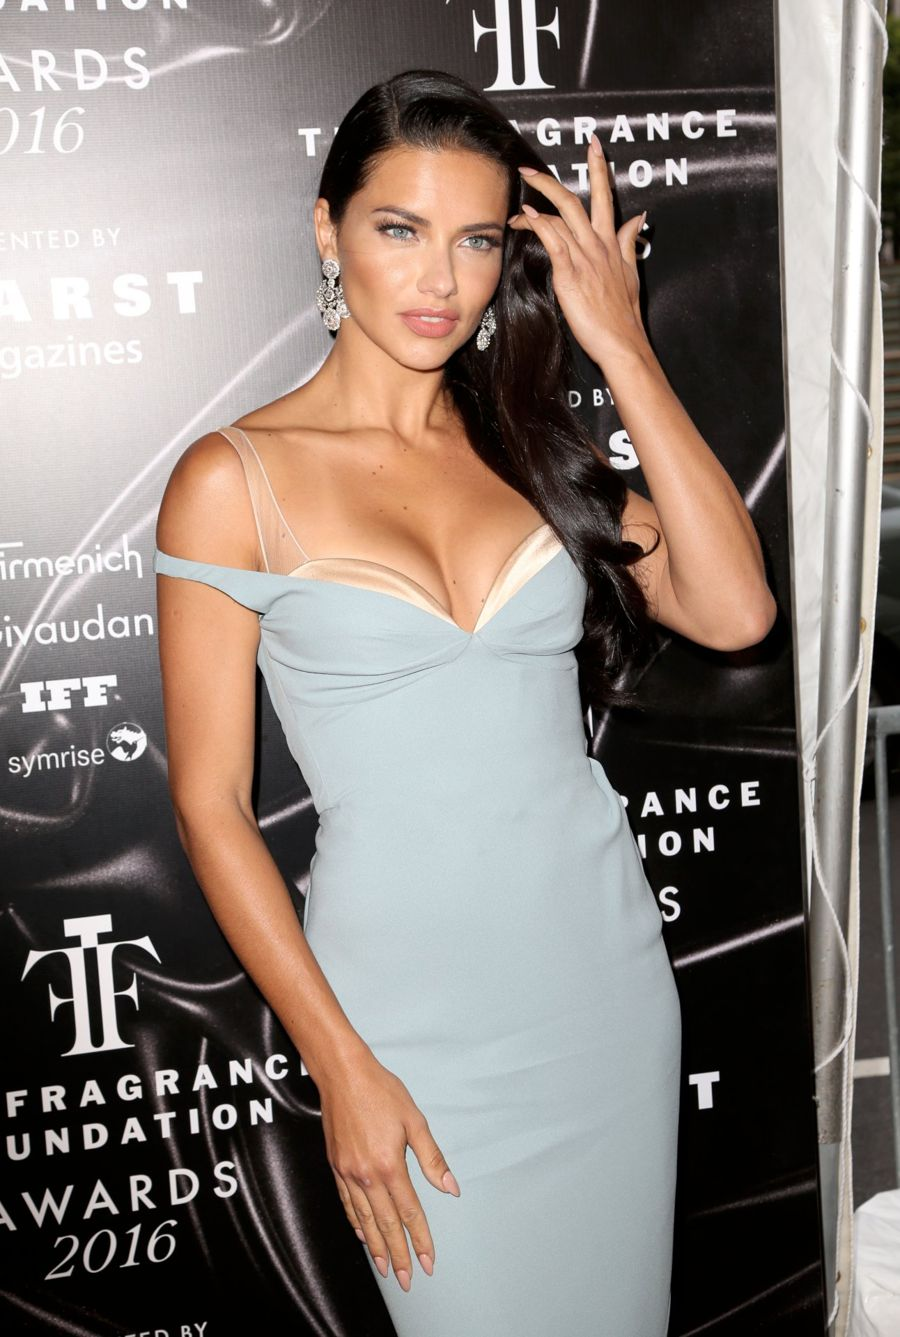 Adriana Lima - 2016 Fragrance Foundation Awards in New York